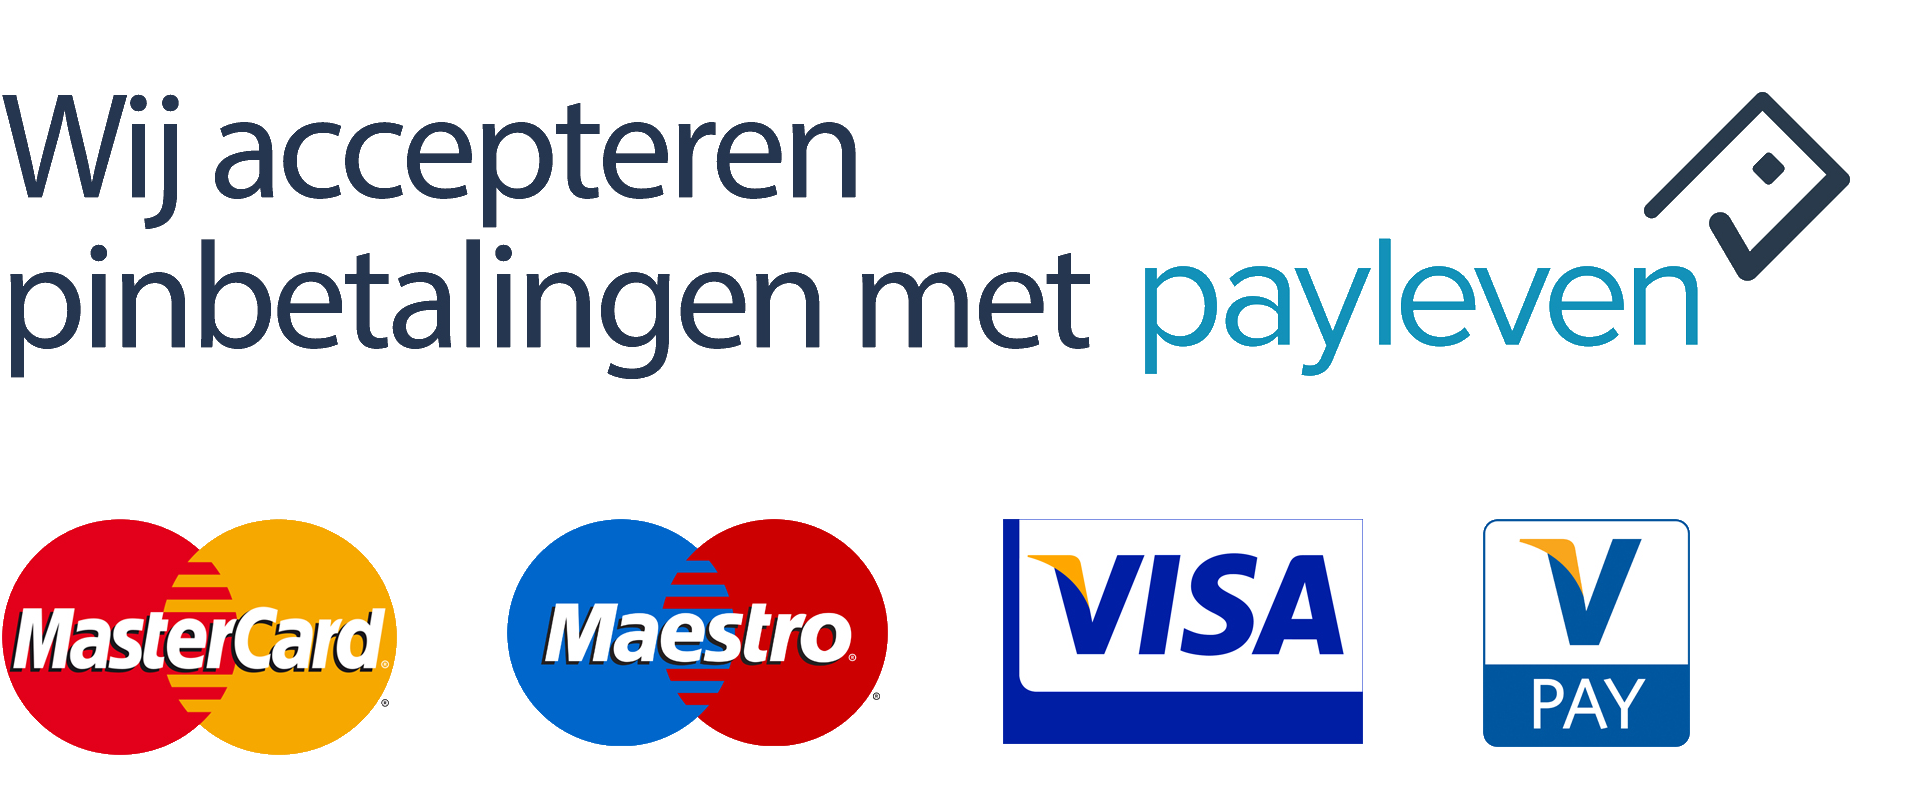 Payleven banner